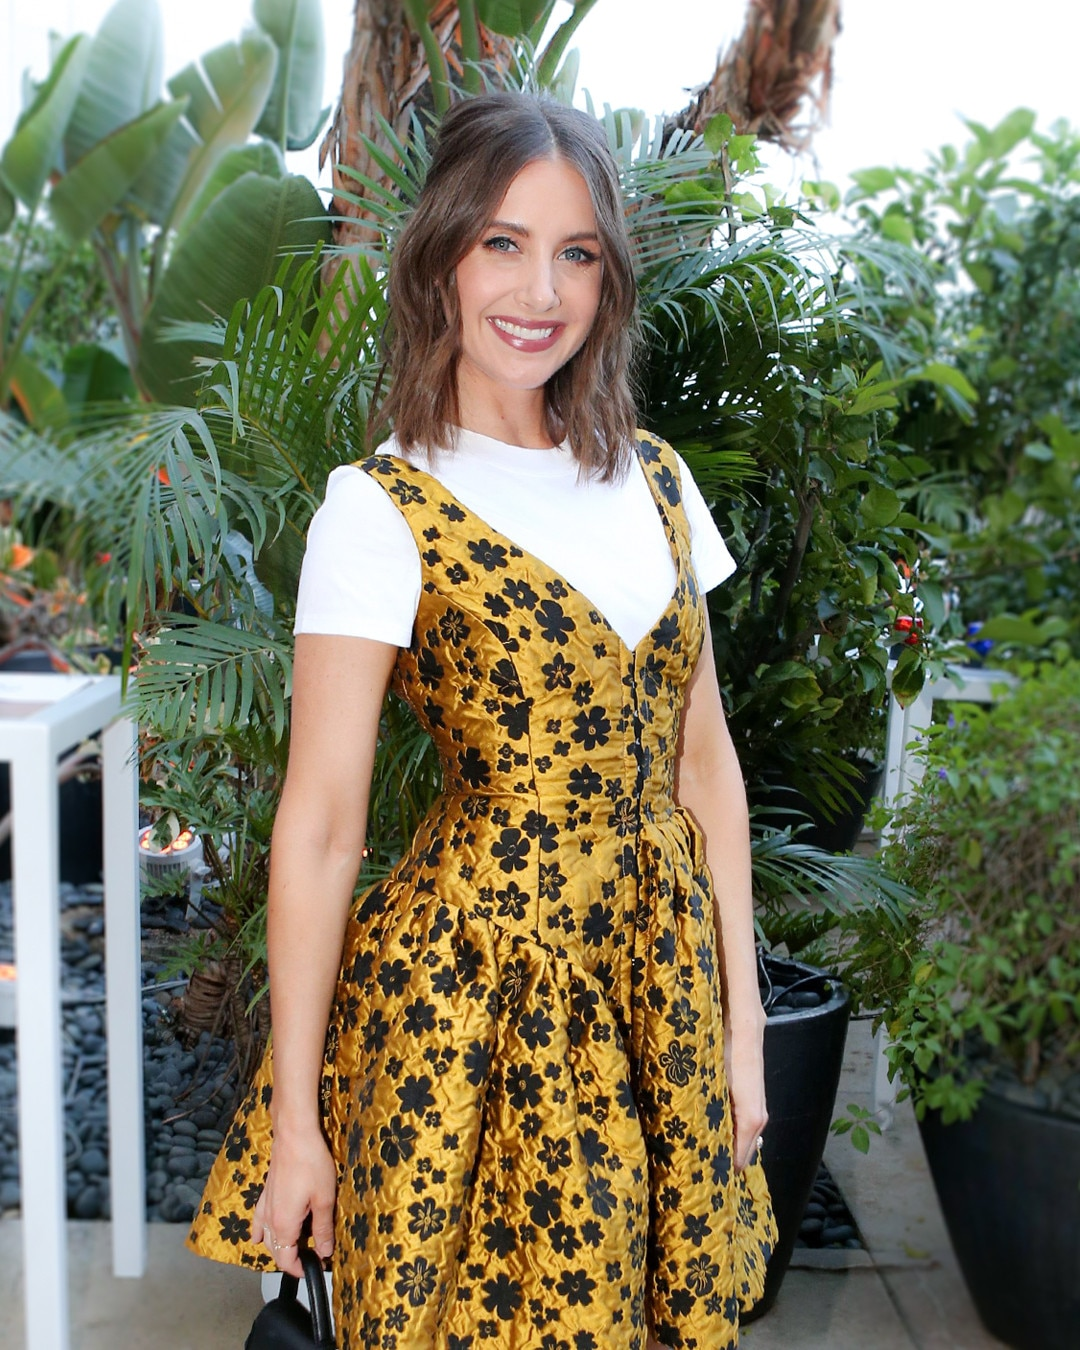 How to Wear Shirts Under Dresses Like Alison Brie | E! News